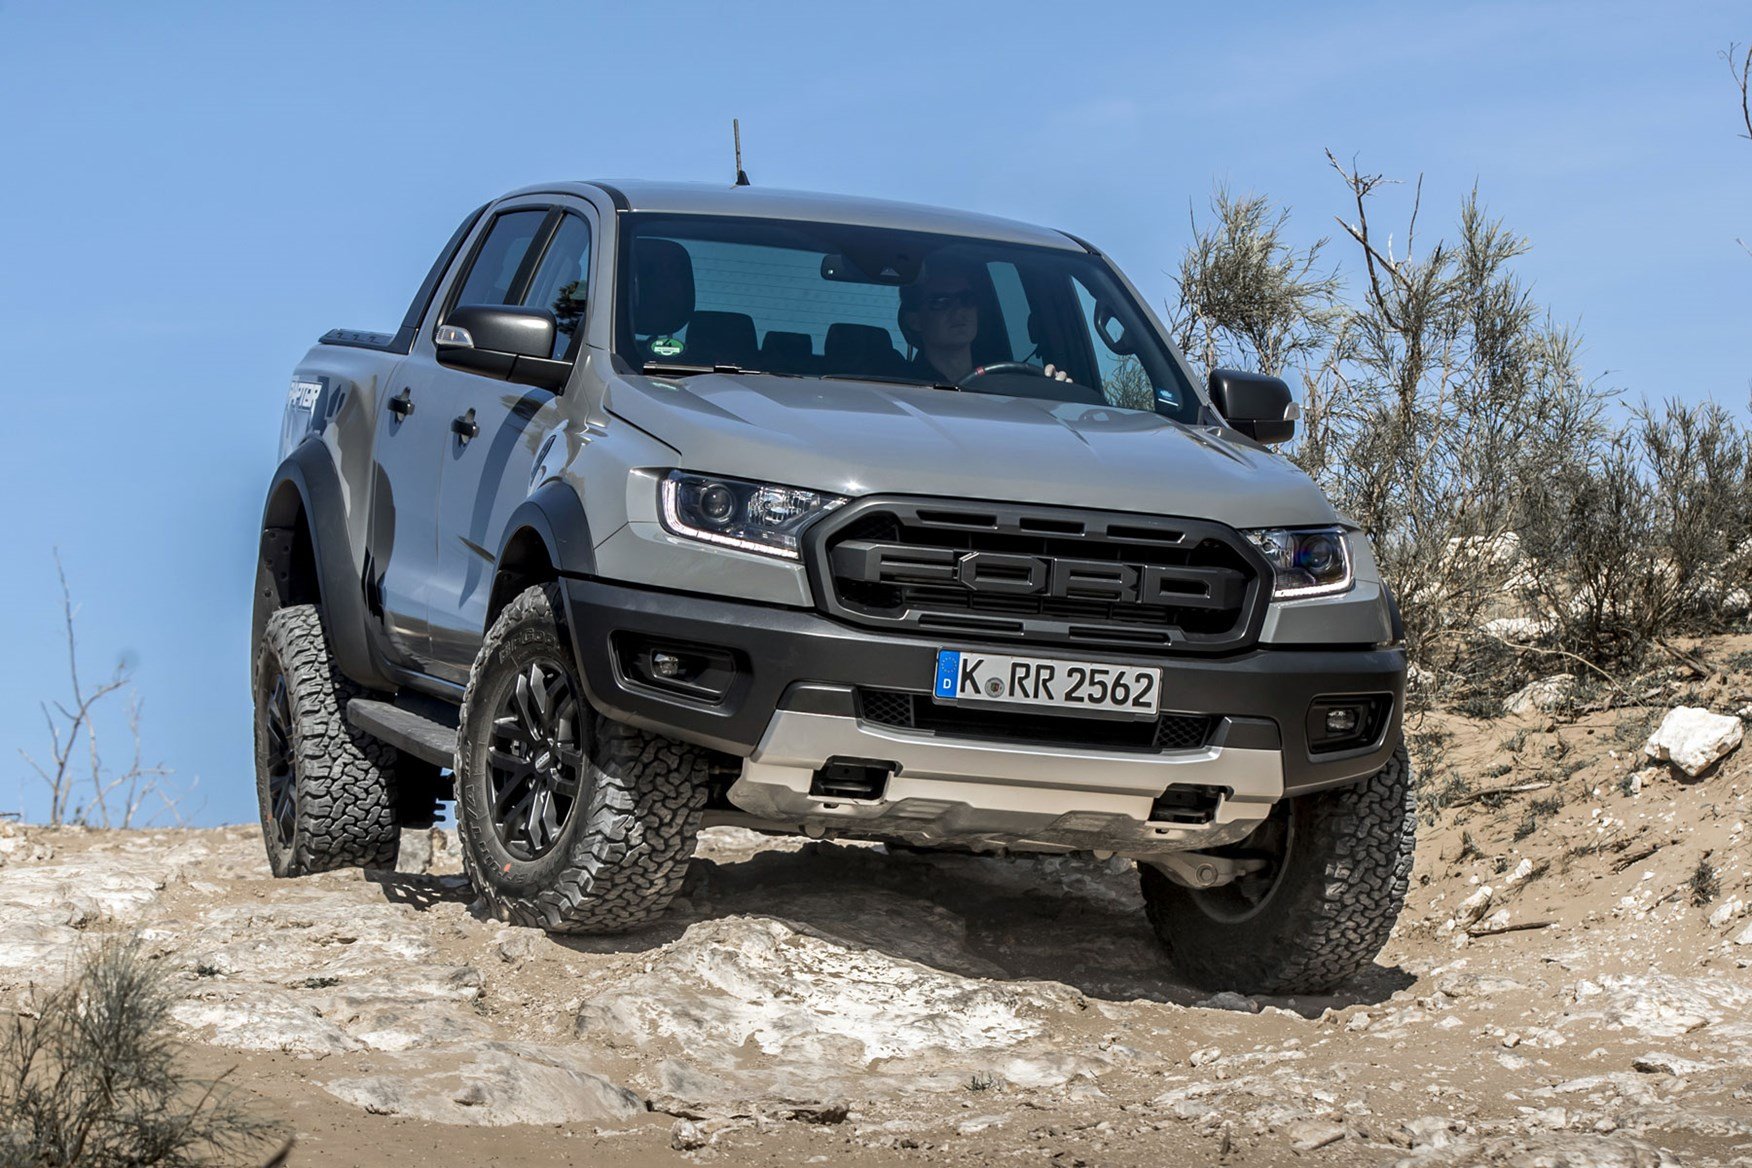 Ford Ranger Raptor - front view, Conquer Grey, parked on rocks showing off axle articulation